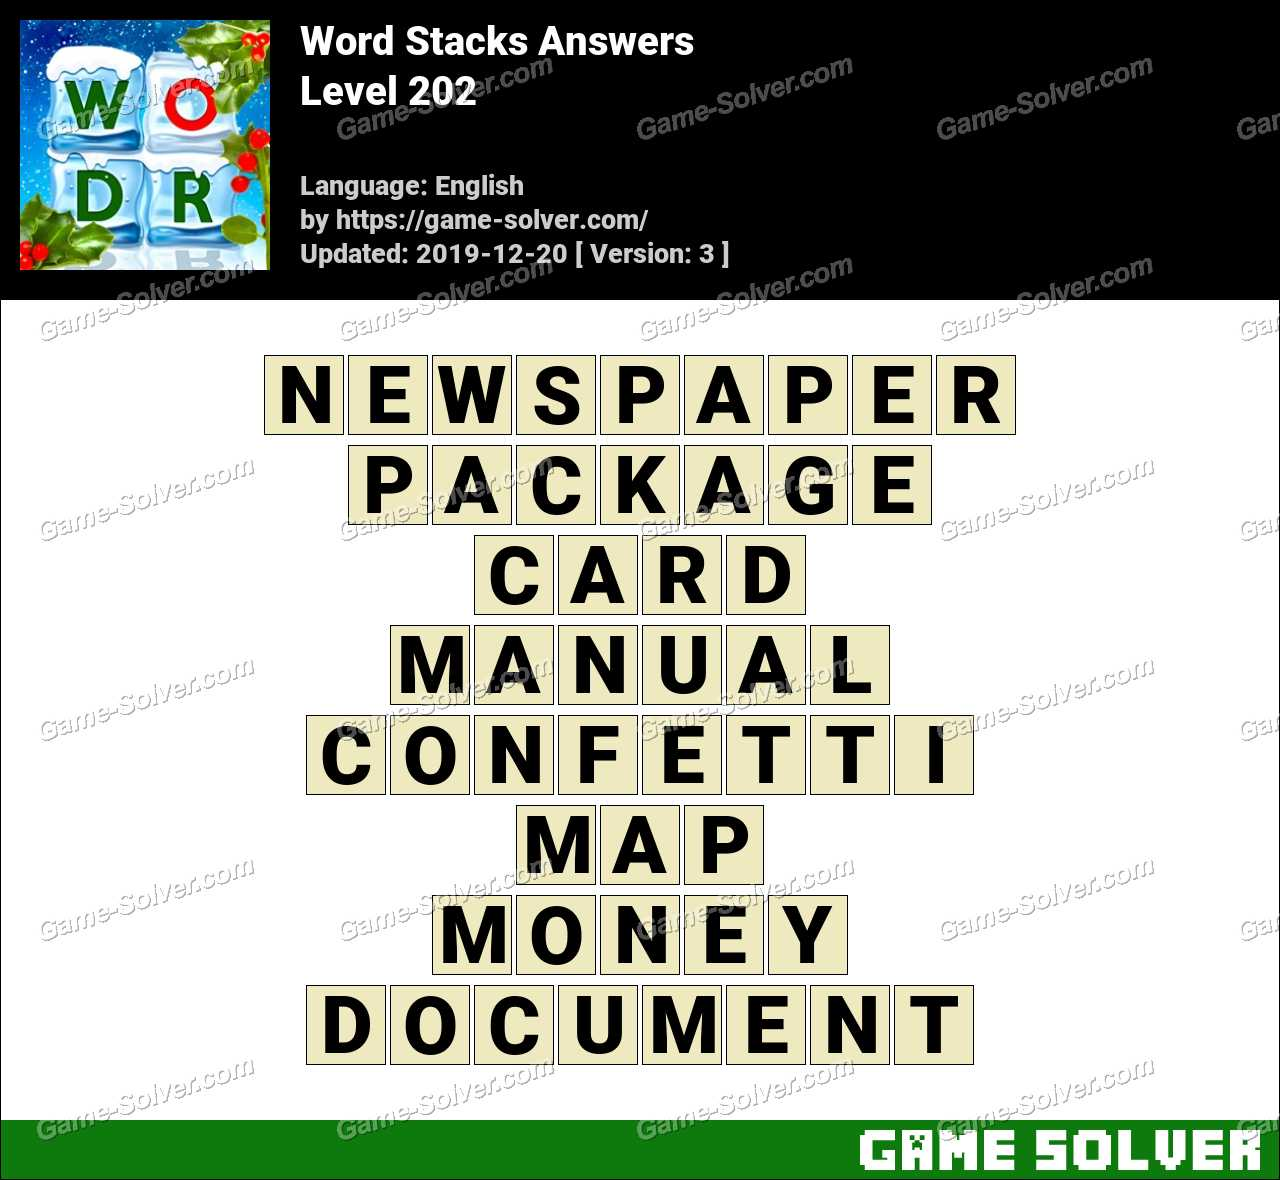 Word Stacks Level 202 Answers